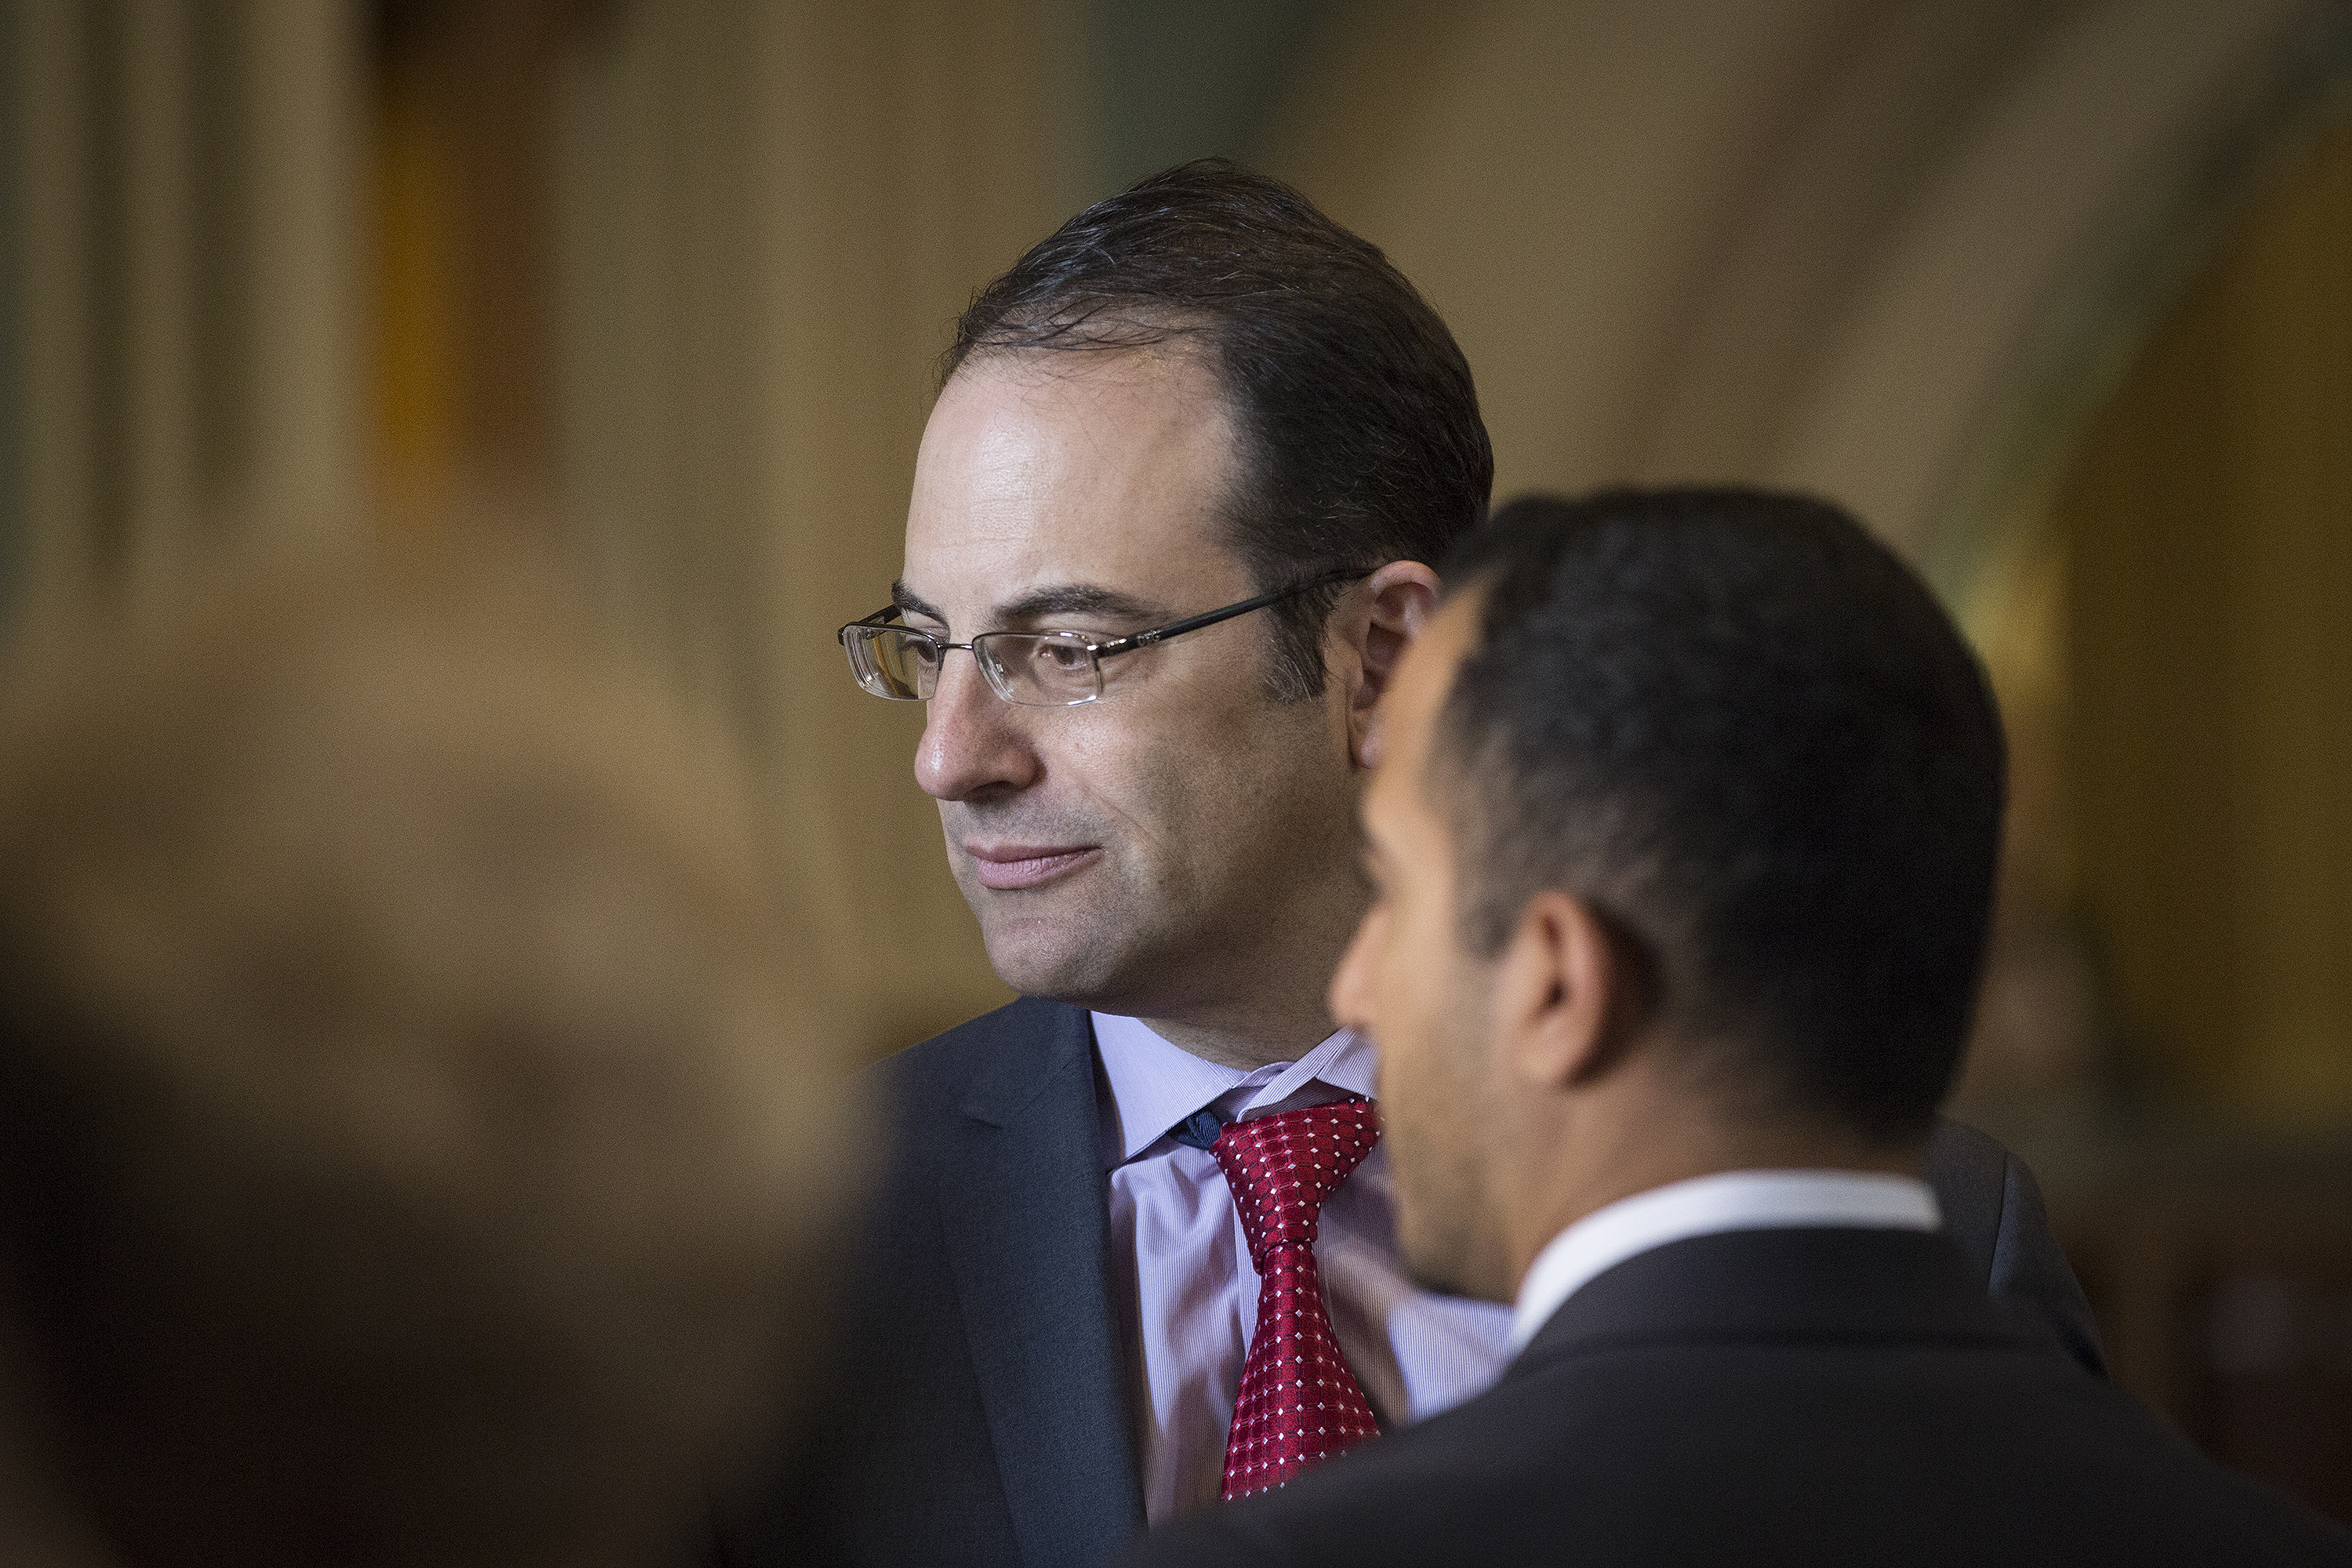 Colorado Attorney General Phil Weiser was among recently elected statewide office holders on hand to hear Gov. Jared Polis's first State of the State address on Thursday Jan. 10, 2019.